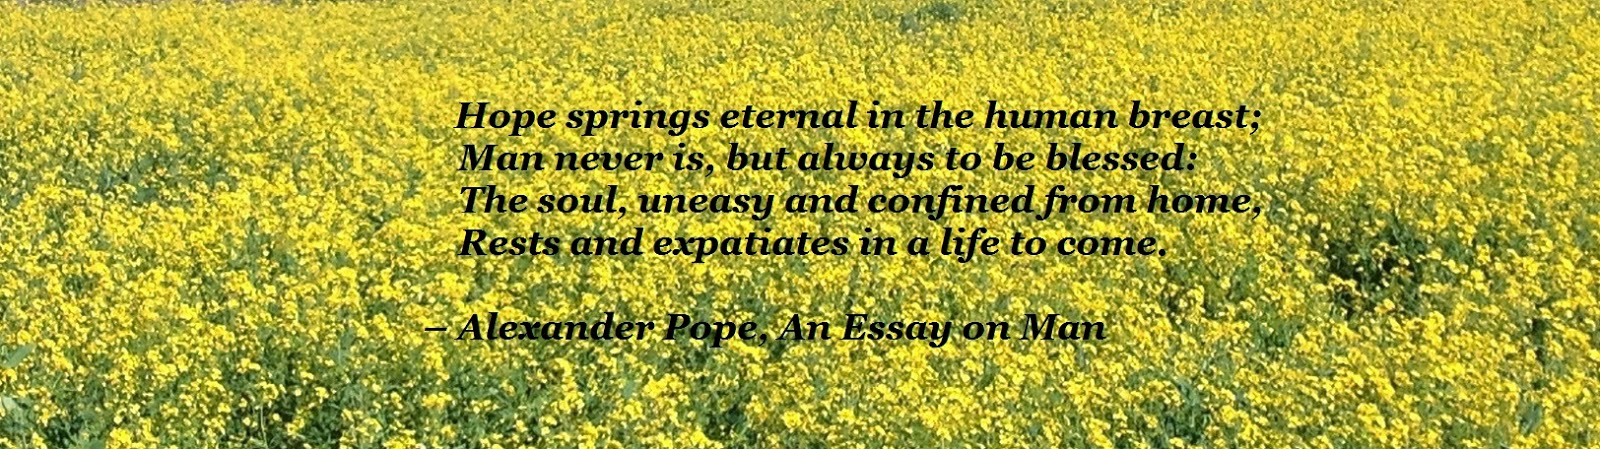 "pope essay on man hope springs eternal Librivox recording of an essay on man, by alexander pope read by martin gleeson  ""hope springs eternal in the human breast: man never is, but always to be ."